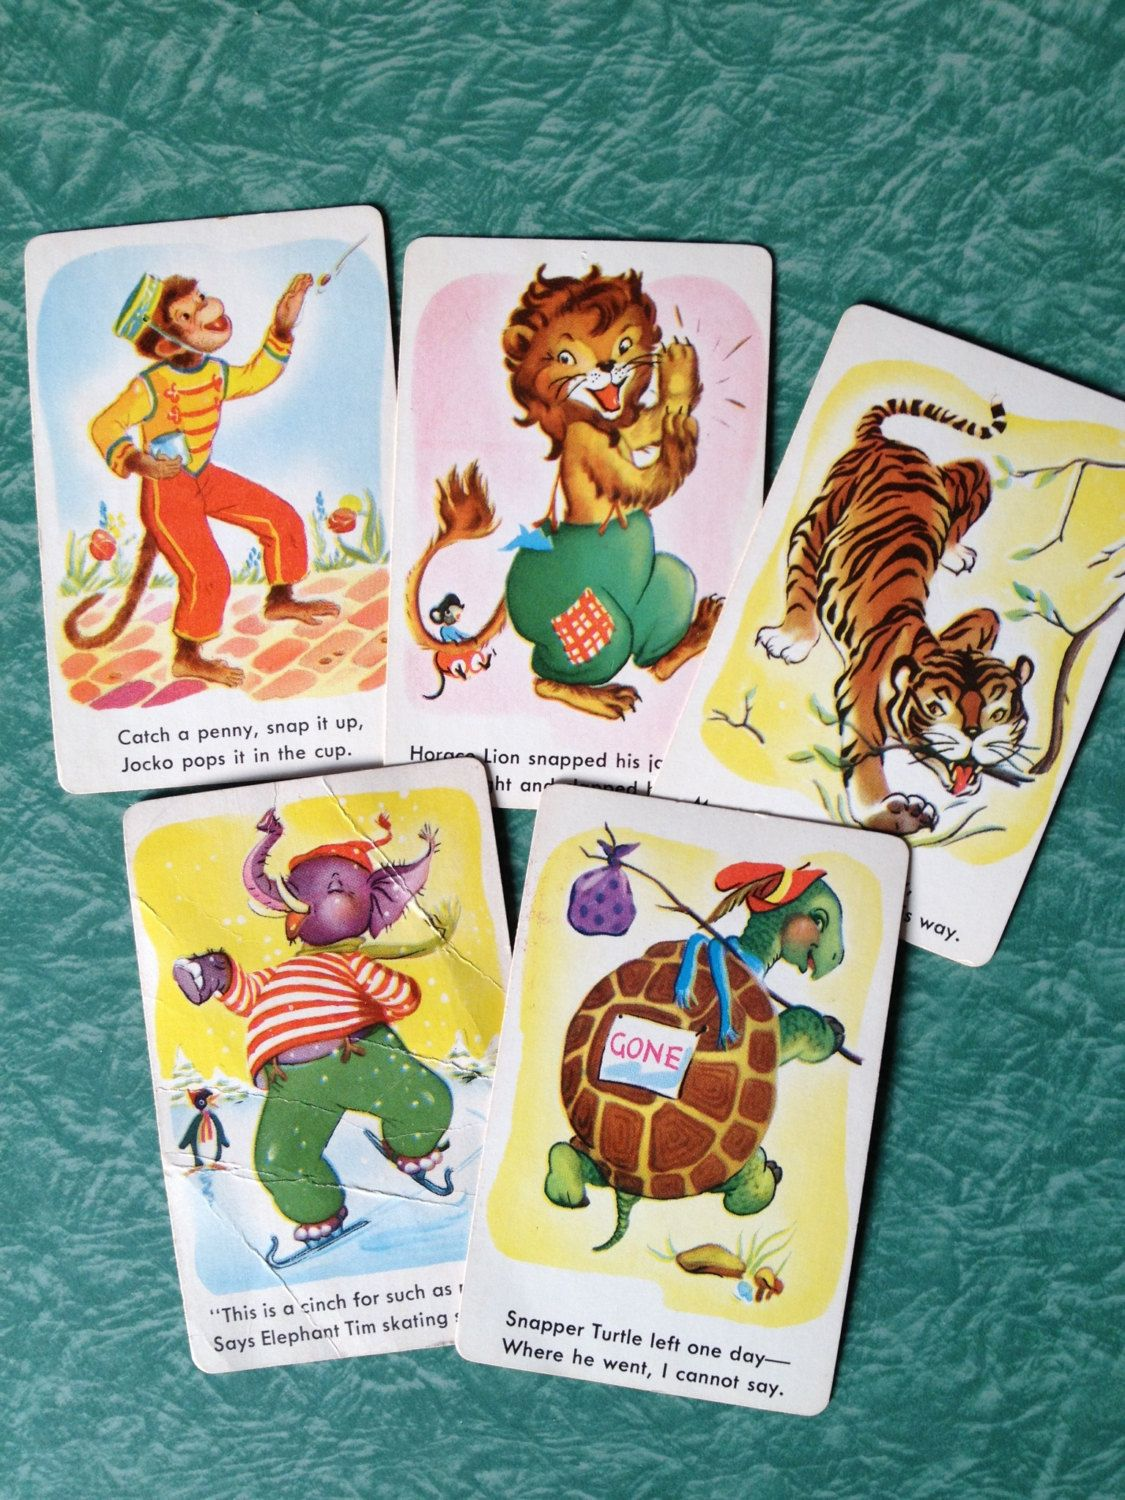 Vintage Snap card game, 1950's, vintage cards Card games